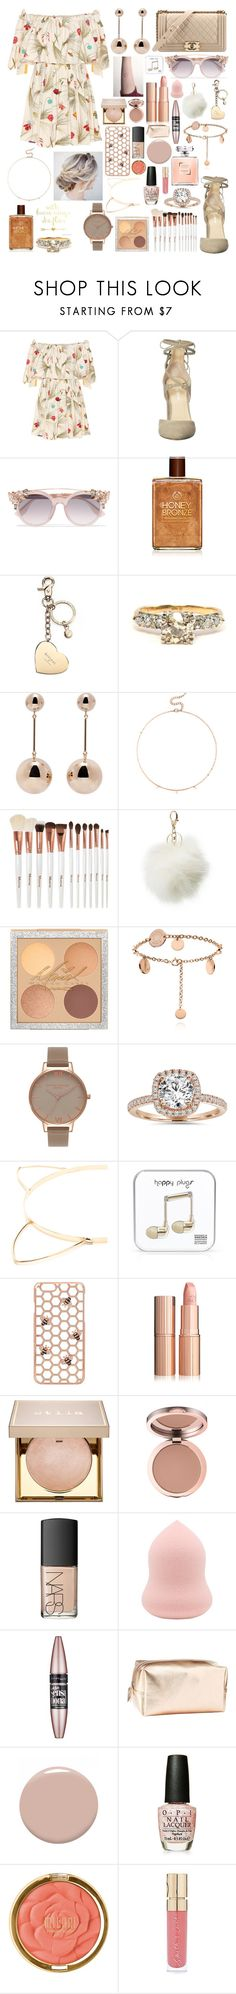 """1+1"" by ebz127 ❤ liked on Polyvore featuring Fendi, Ivanka Trump, Chanel, Jimmy Choo, Aspinal of London, J.W. Anderson, Sole Society, Morphe, Charlotte Russe and Olivia Burton"